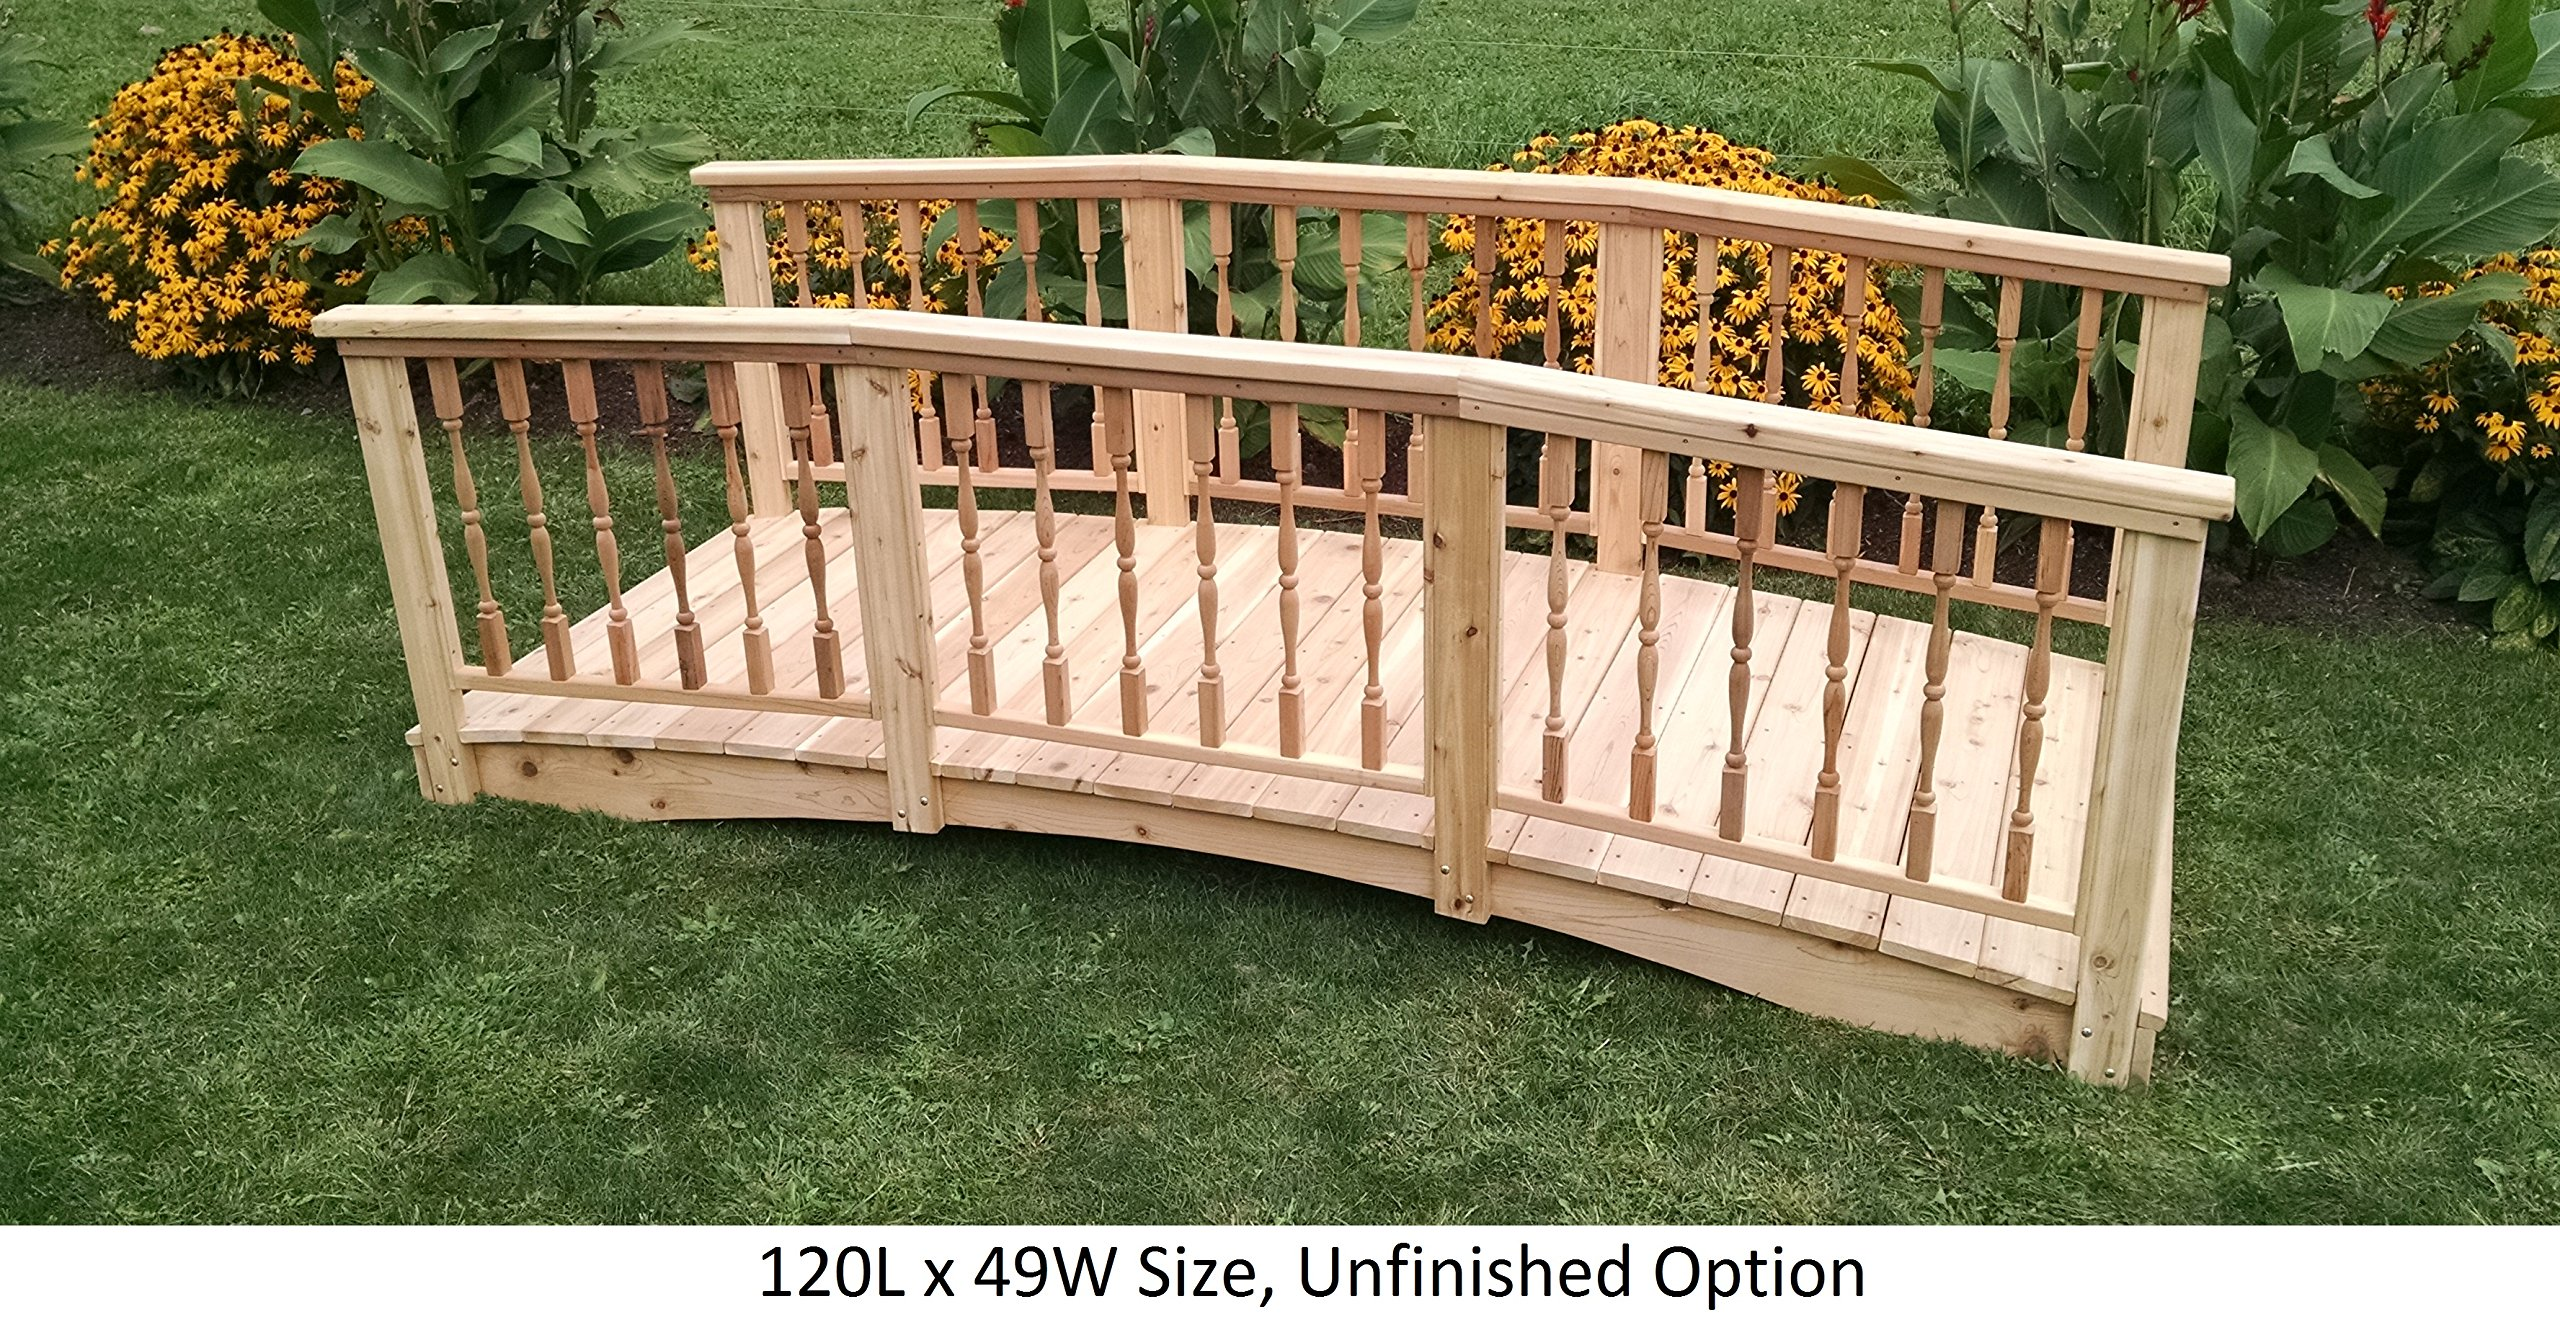 Amish-Made Weight-Bearing Cedar 3' x 6' Spindle Bridge, Unfinished by Backyard Crafts